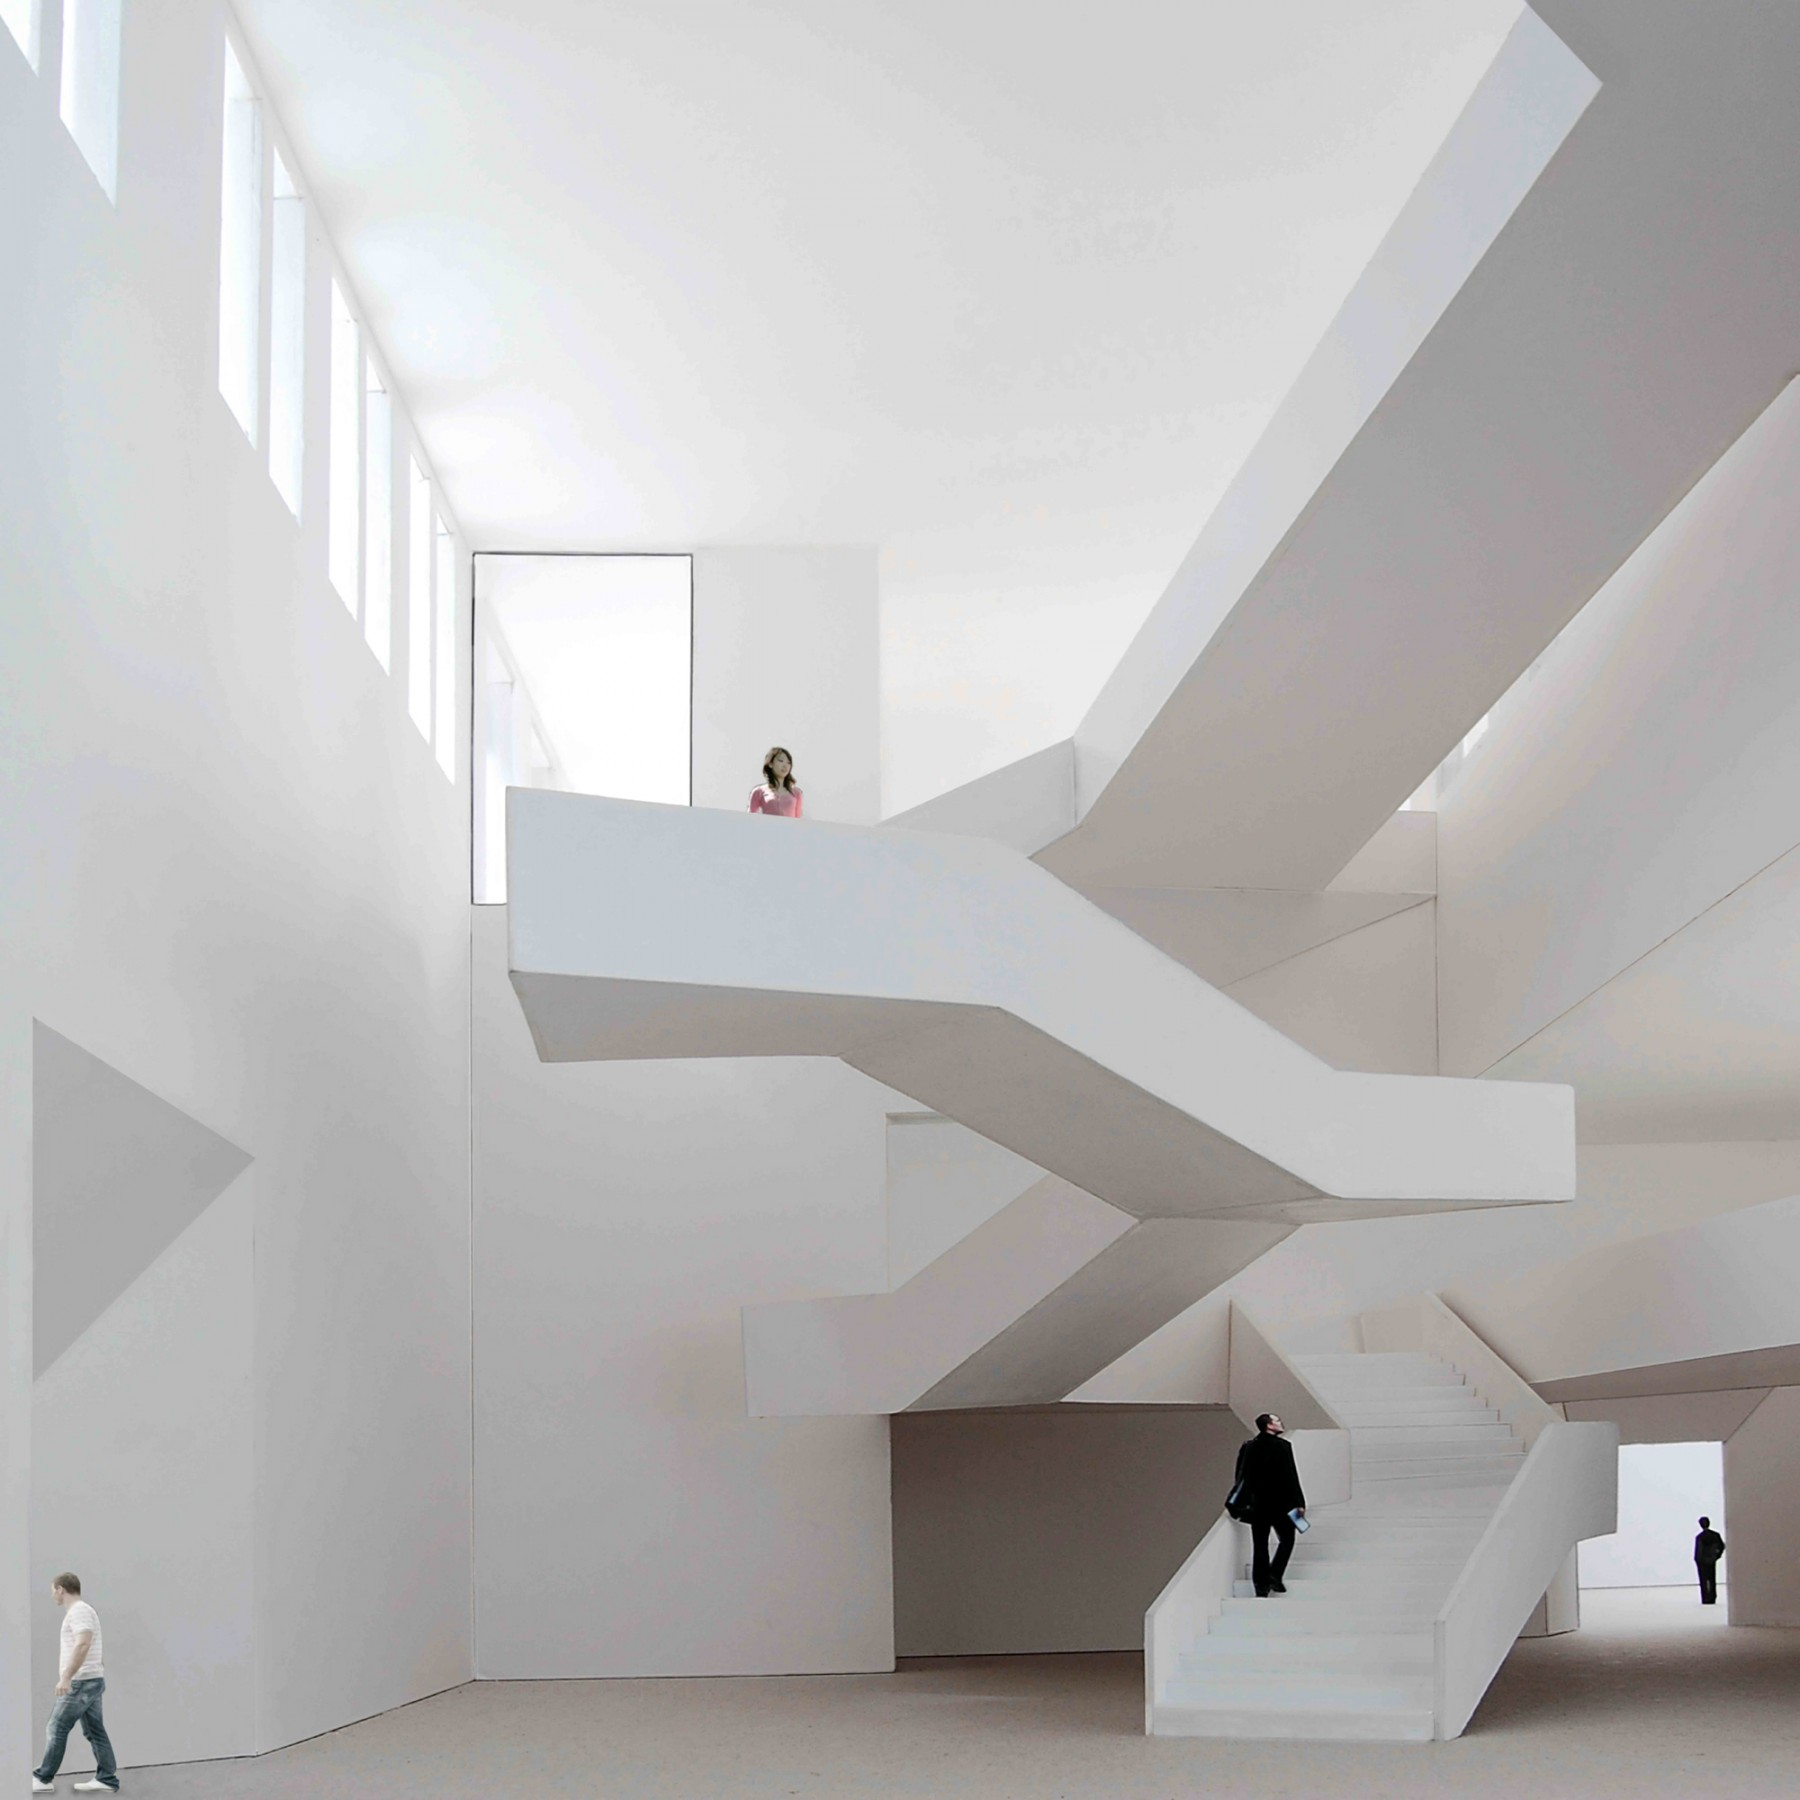 V a exhibition road jamie fobert architects for Interior designers london list